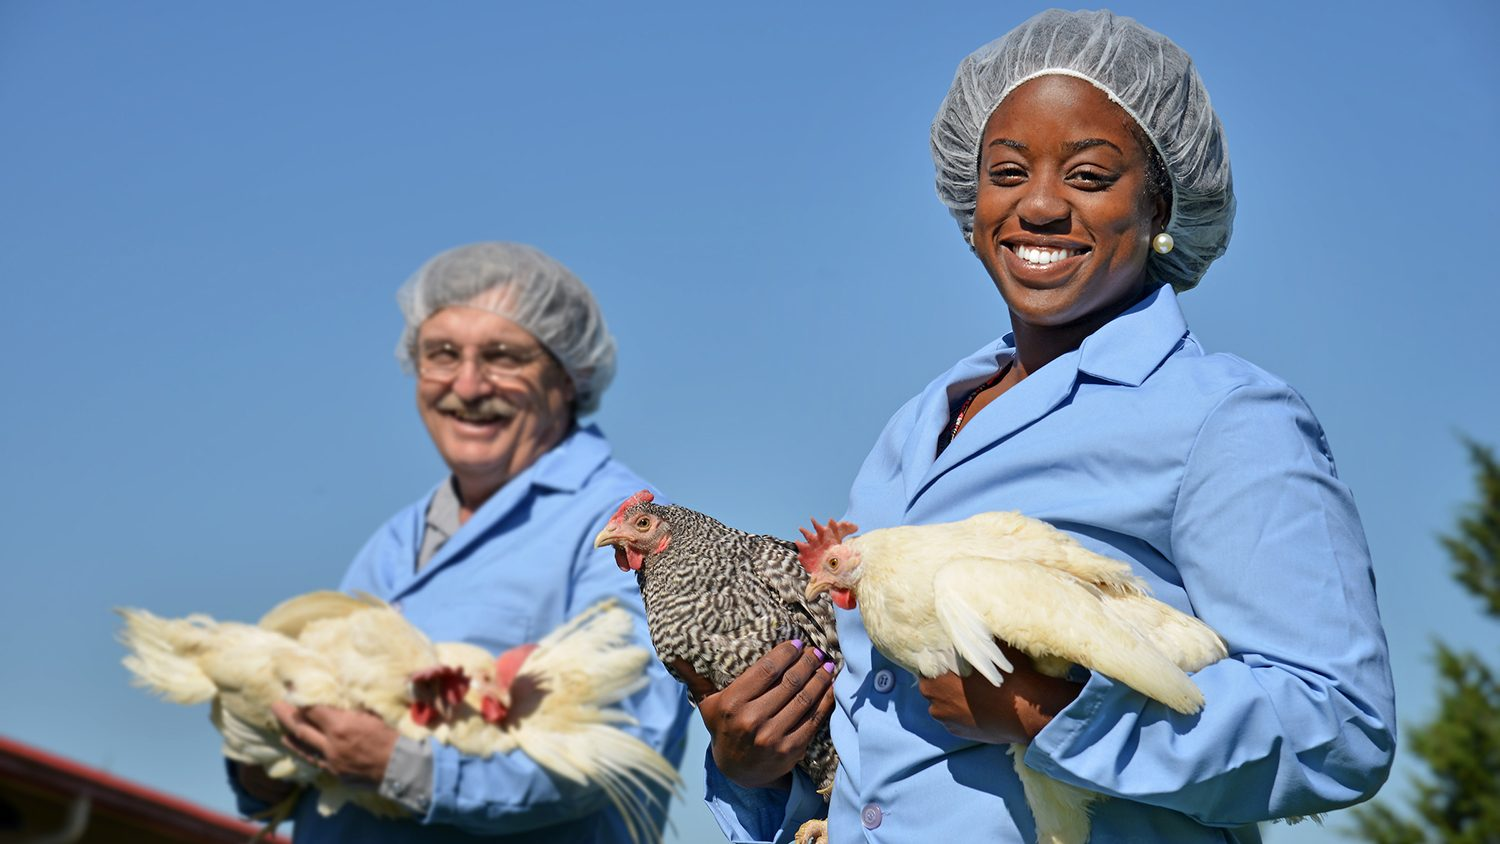 student and researcher holding chickens